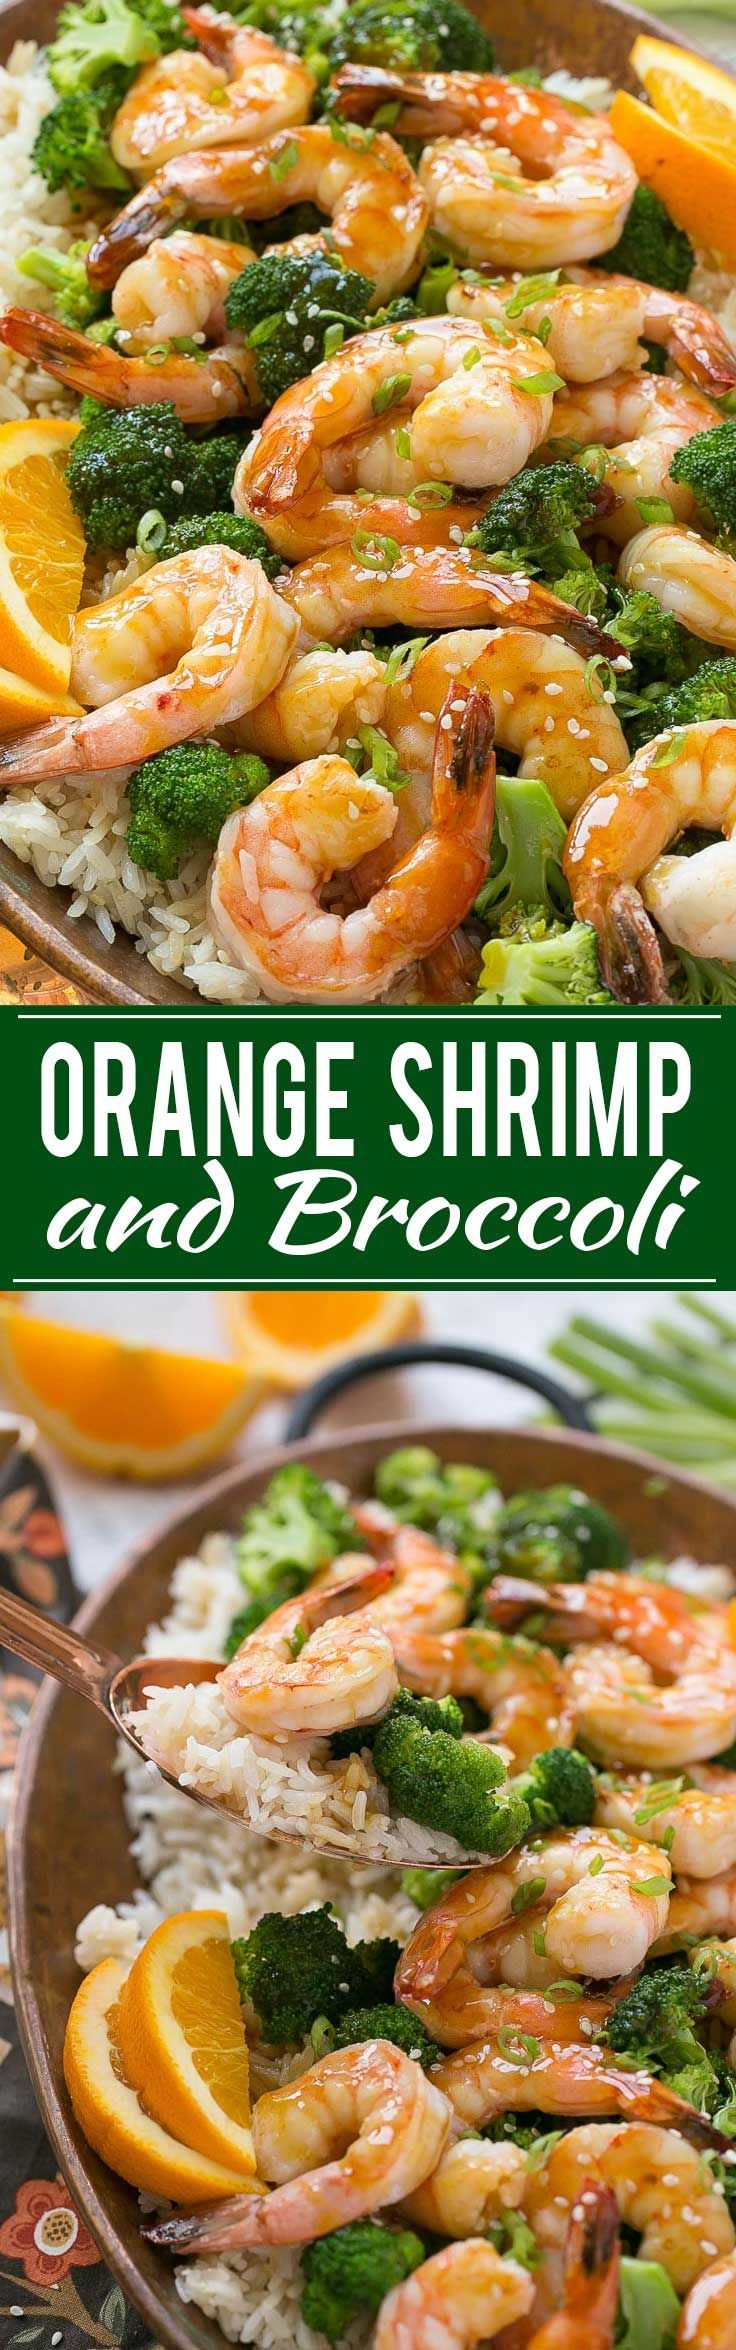 Orange Shrimp and Broccoli with Garlic Sesame Fried Rice - The perfect ...